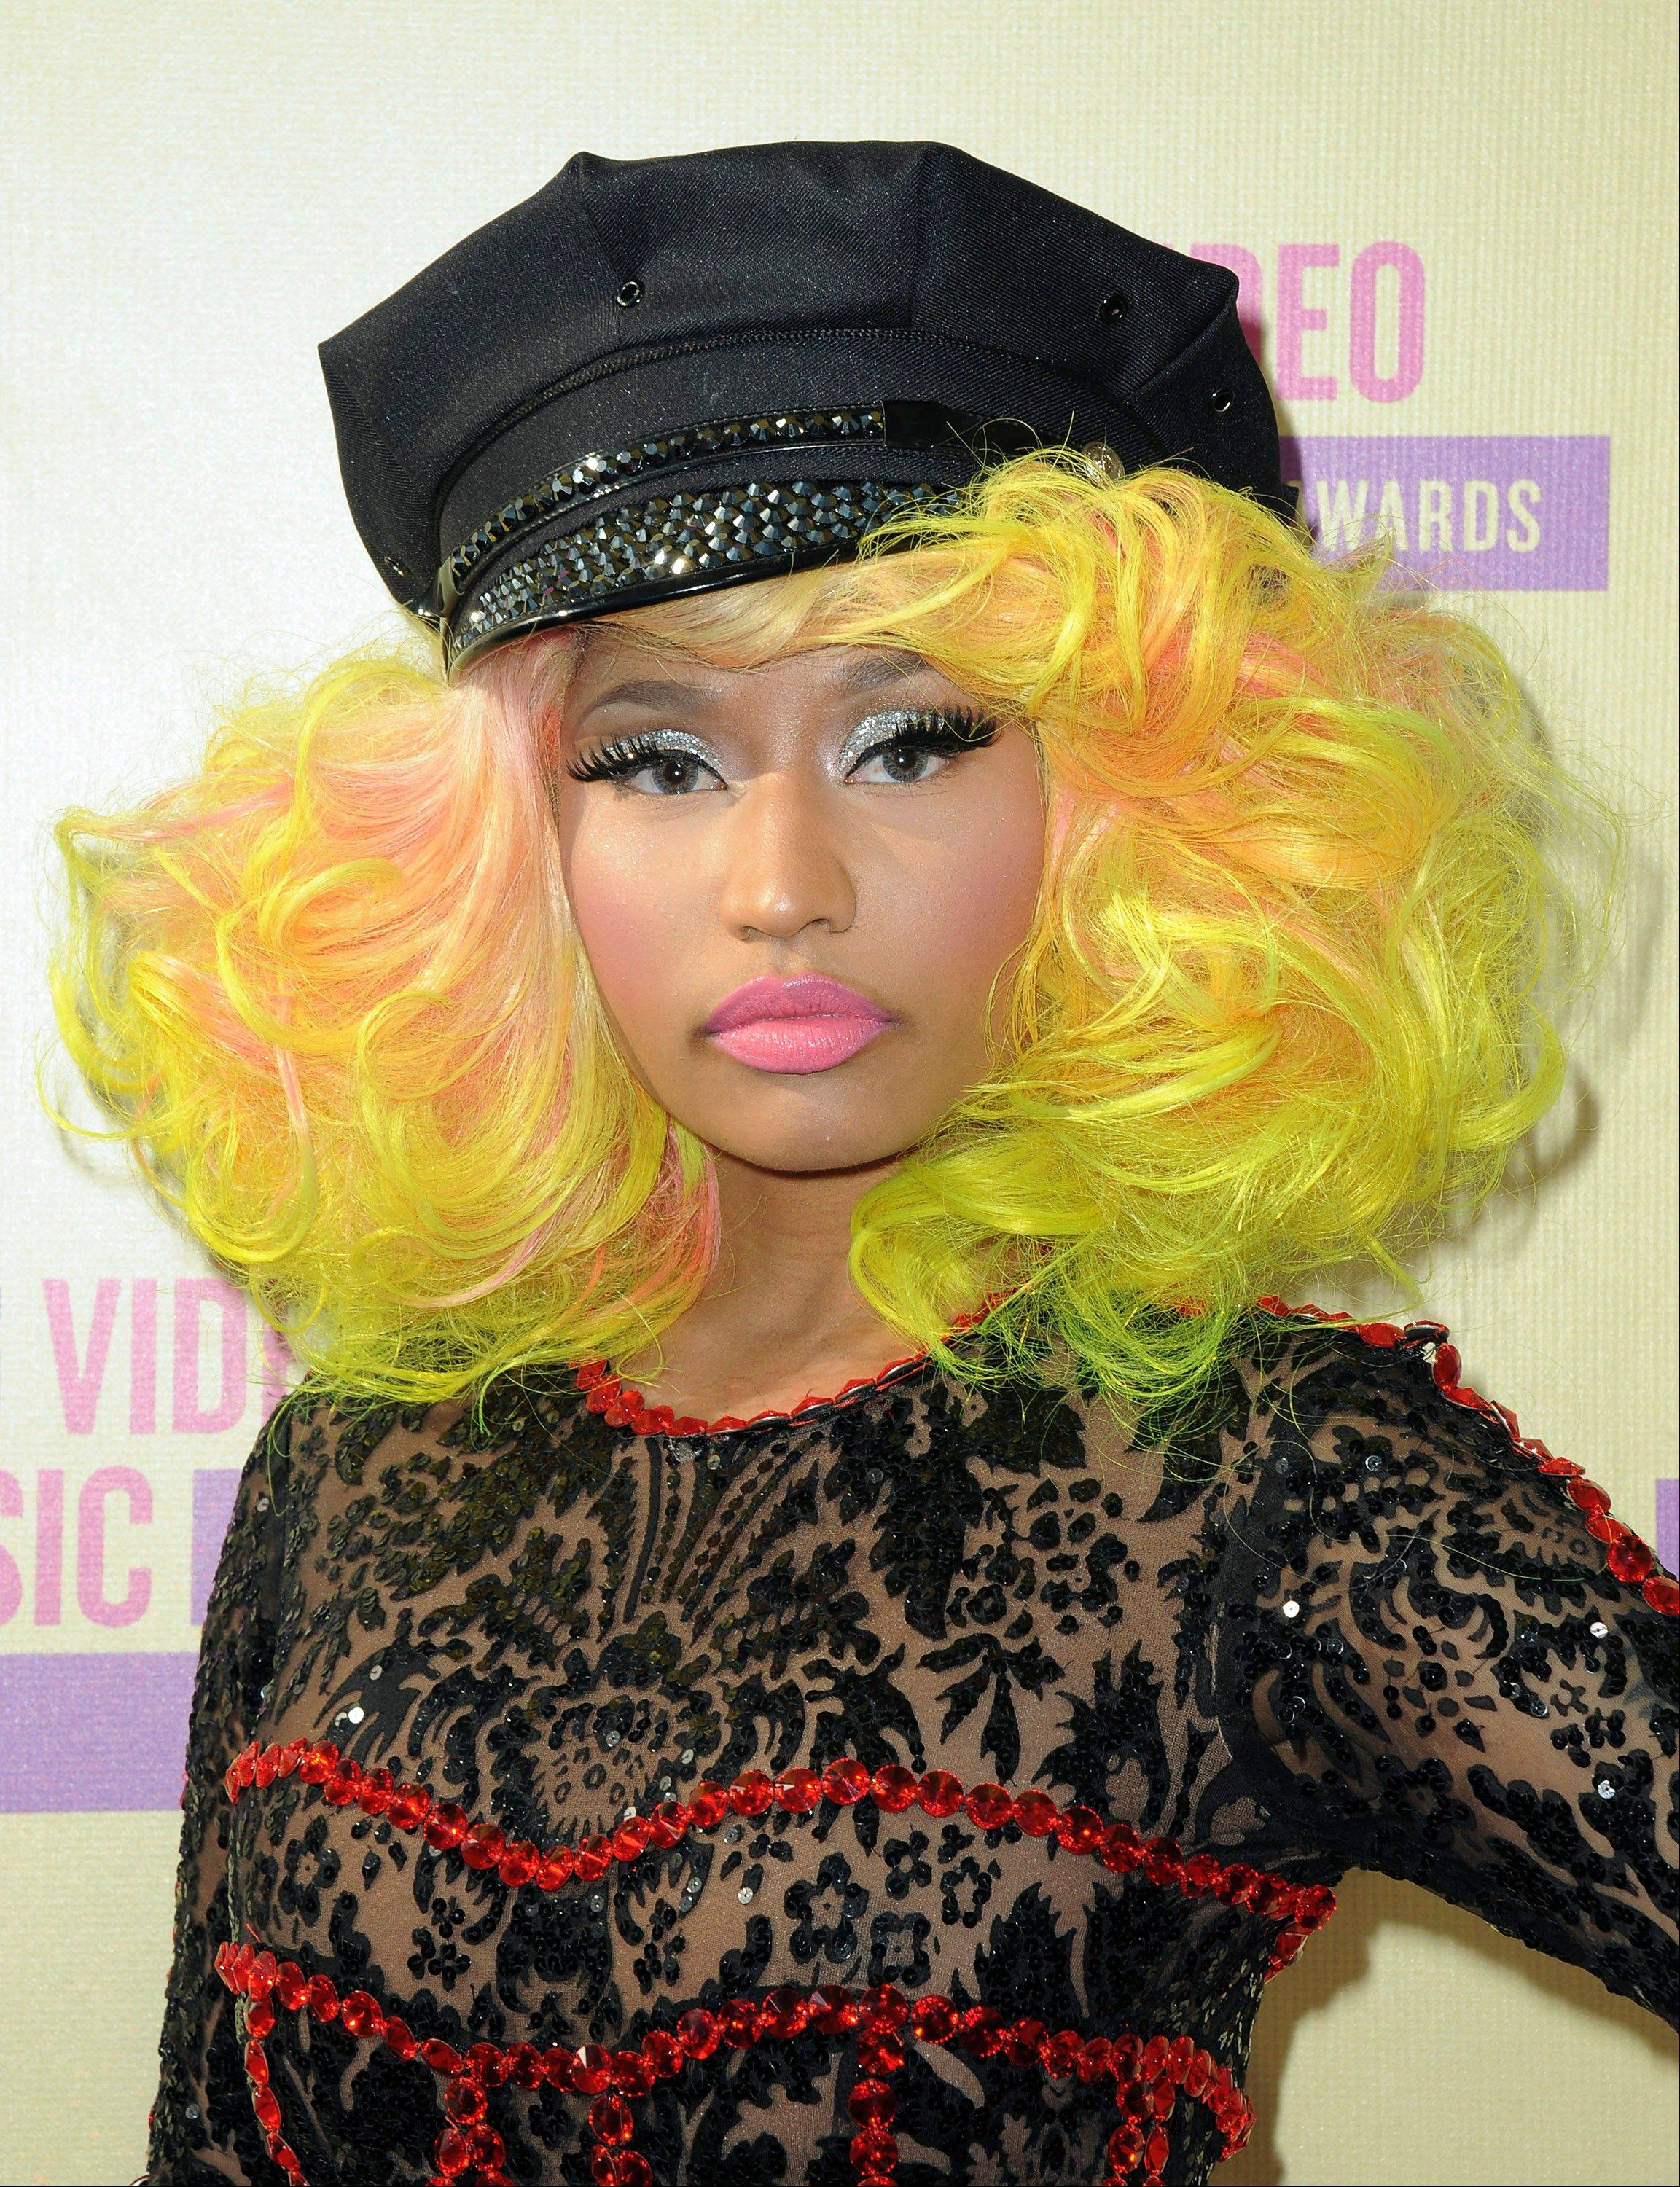 Nicki Minaj arrives at the MTV Video Music Awards on Thursday, Sept. 6, 2012, in Los Angeles.